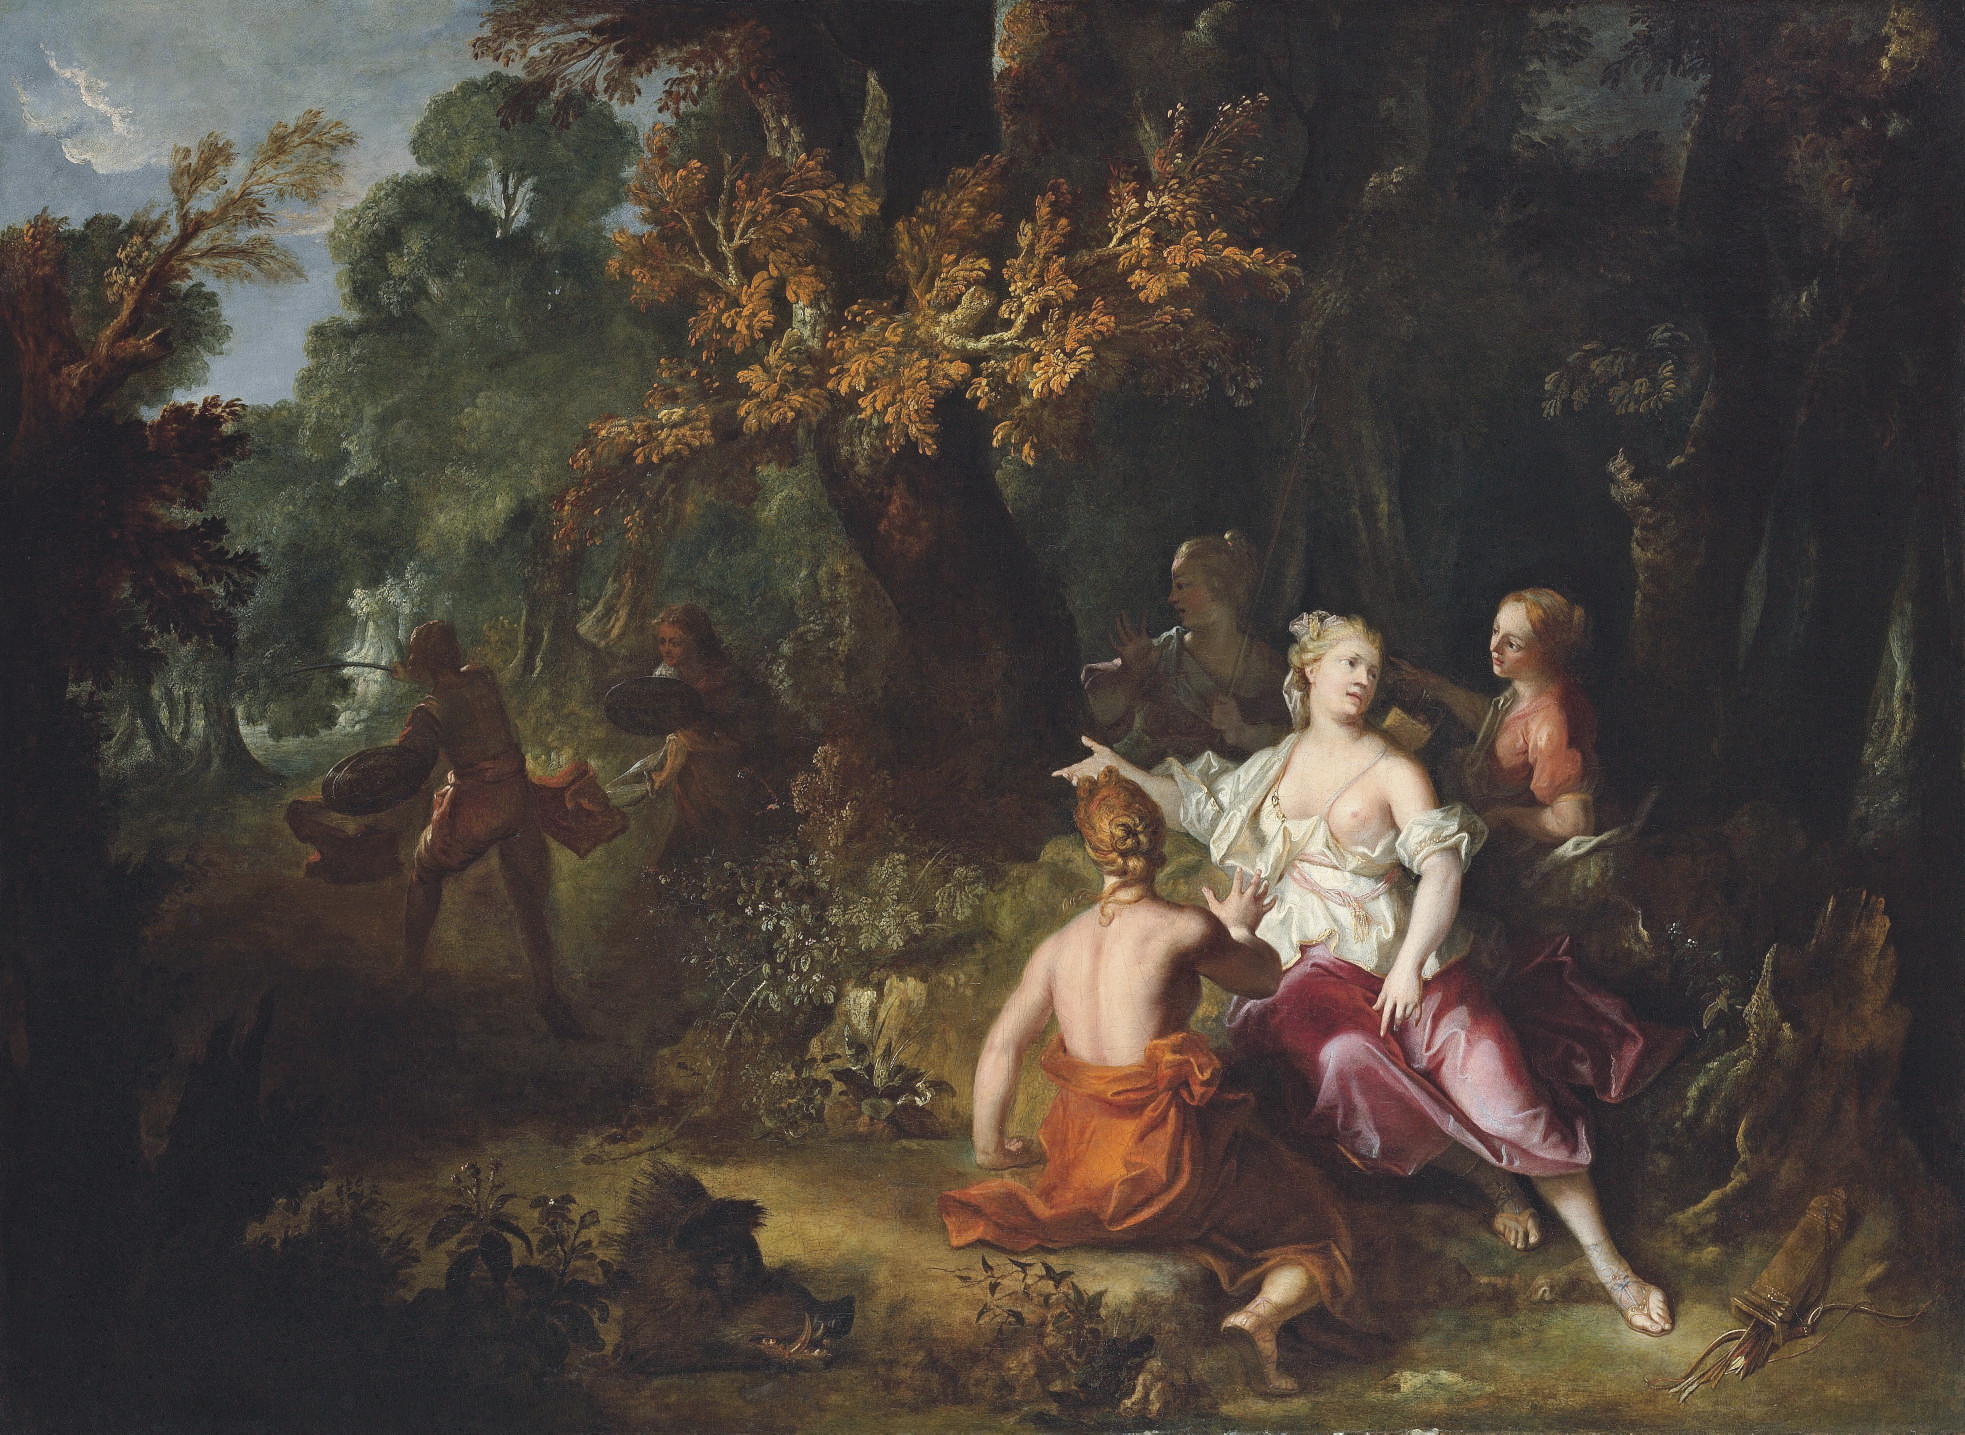 Atalanta and her companions looking at Meleager fighting against one of his uncles